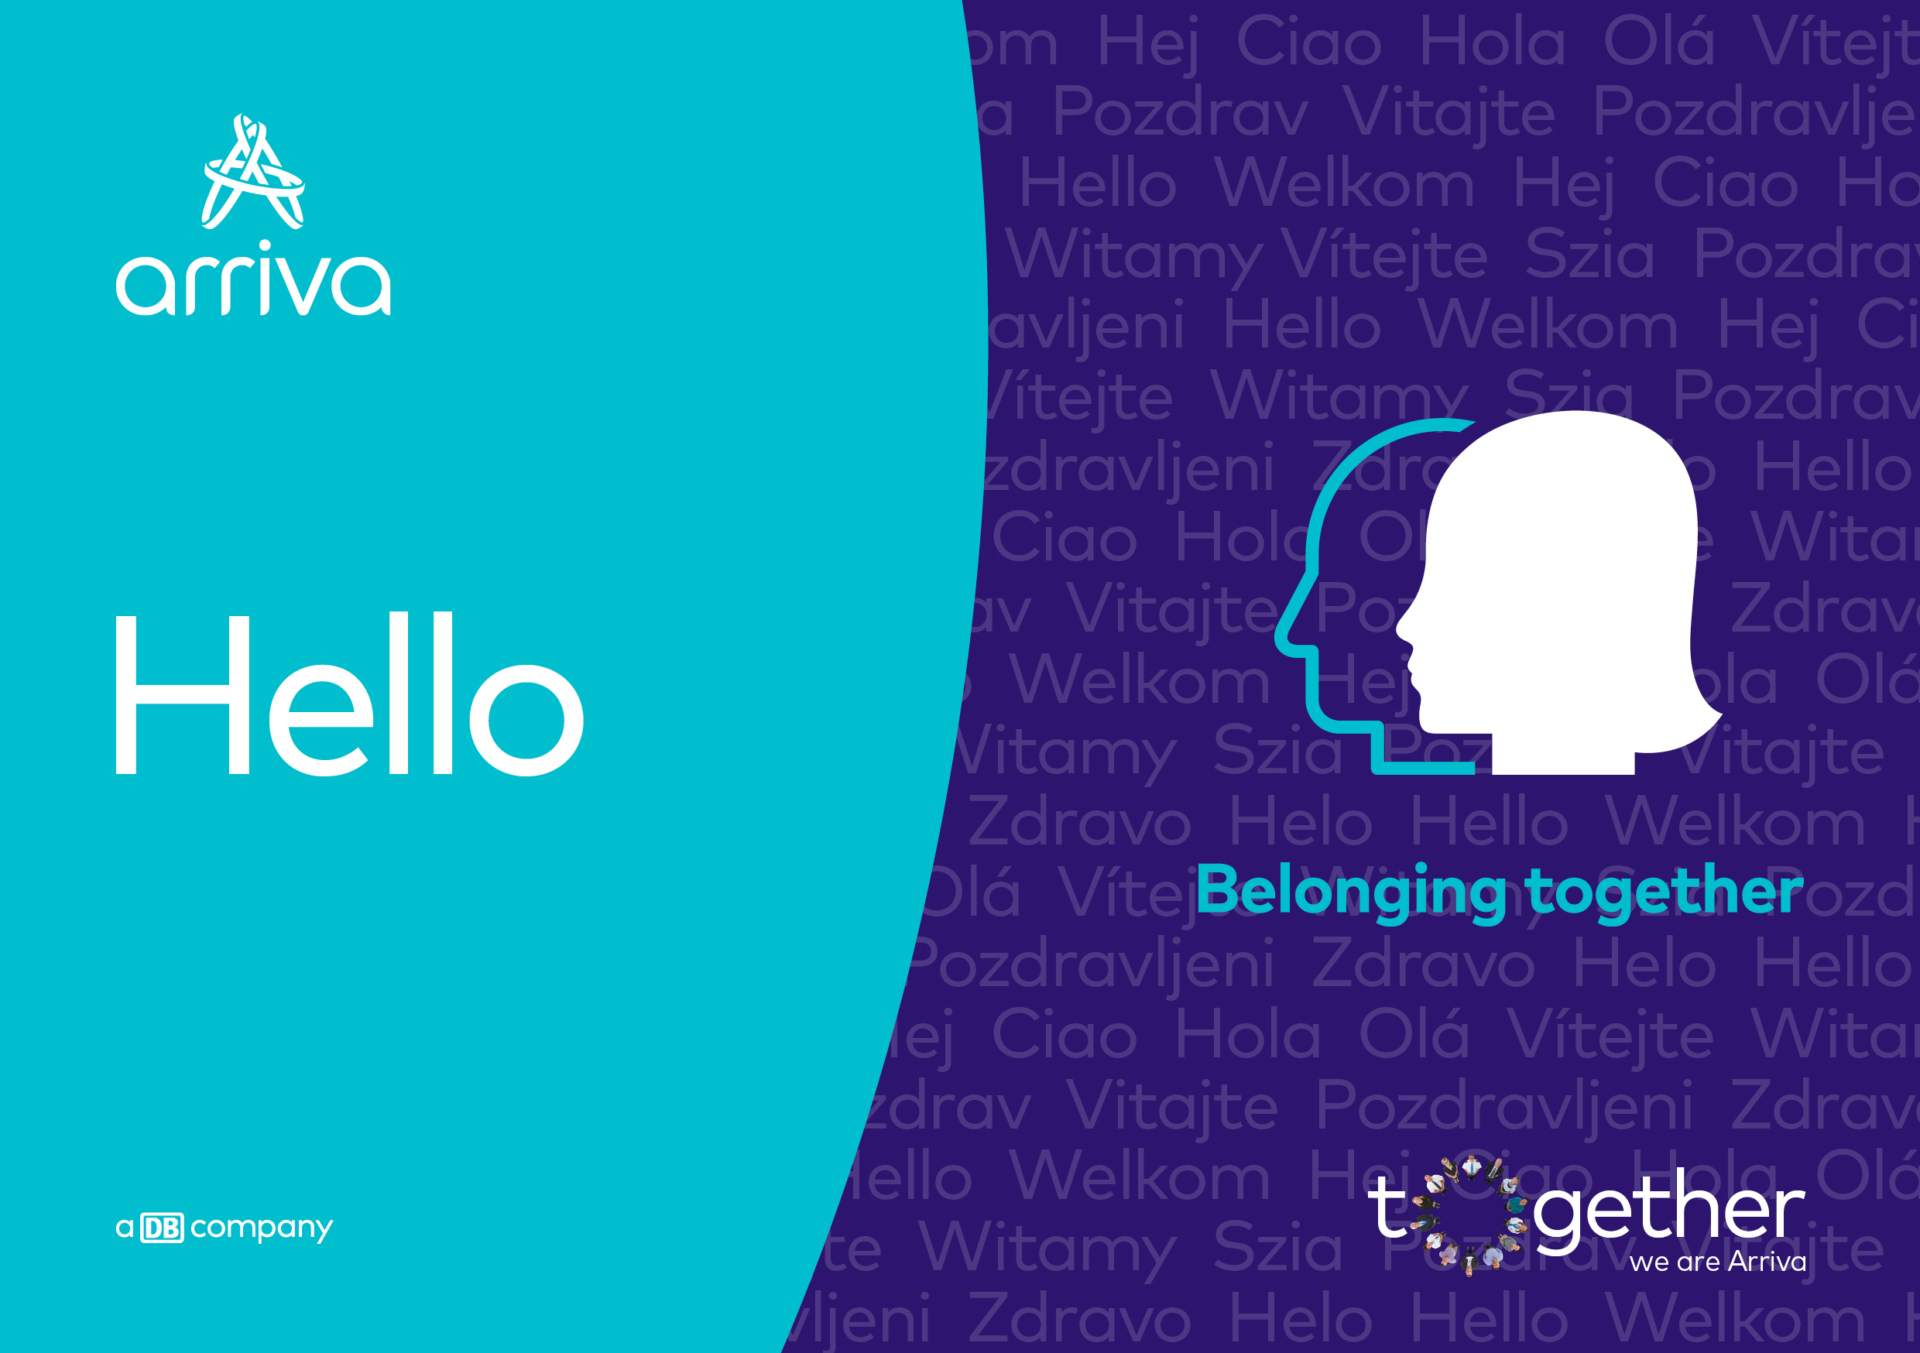 Our employer brandTogether we are Arrivadescribes Arriva as an employer.While we have many autonomous businesses in 14 different countries, there are many ways in which we are connected and there is real strength, value and a competitive advantage to us operating together as a group.